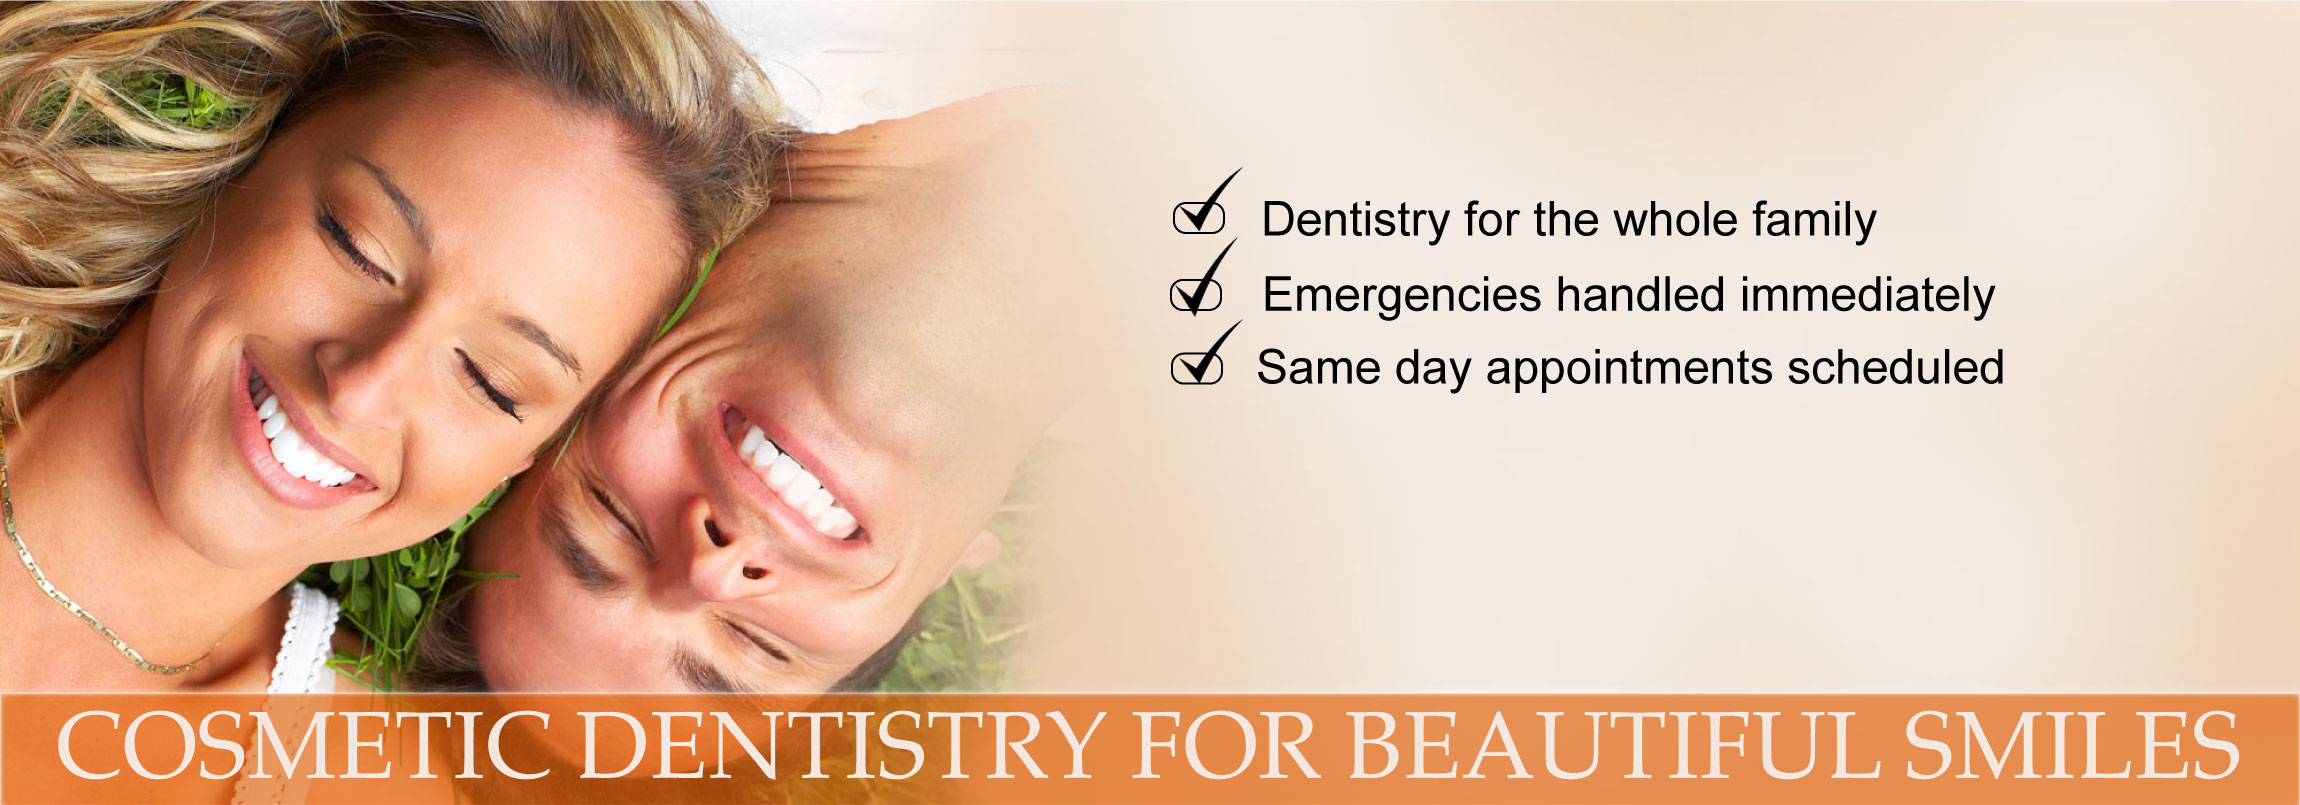 Cosmetic Dentistry - Veneers, Dental Implants